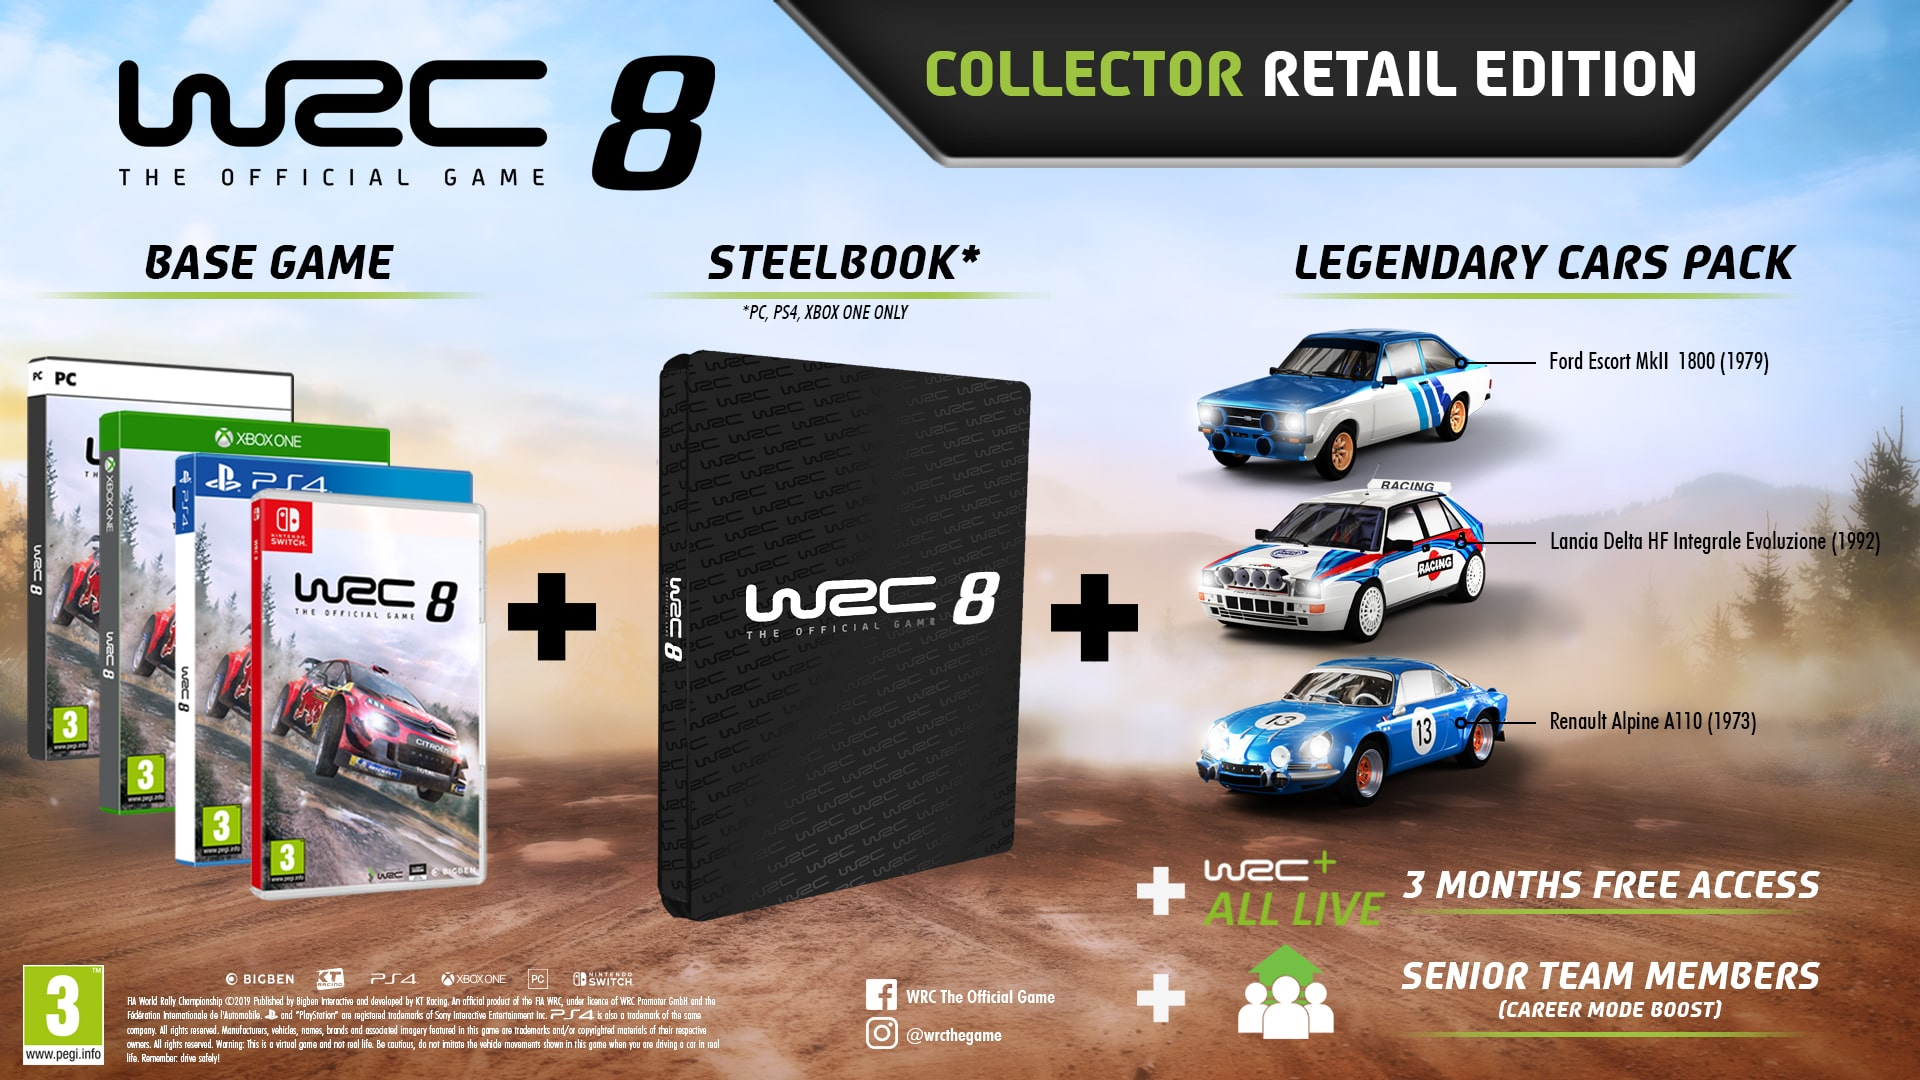 WRC 8 Collector Edition Image